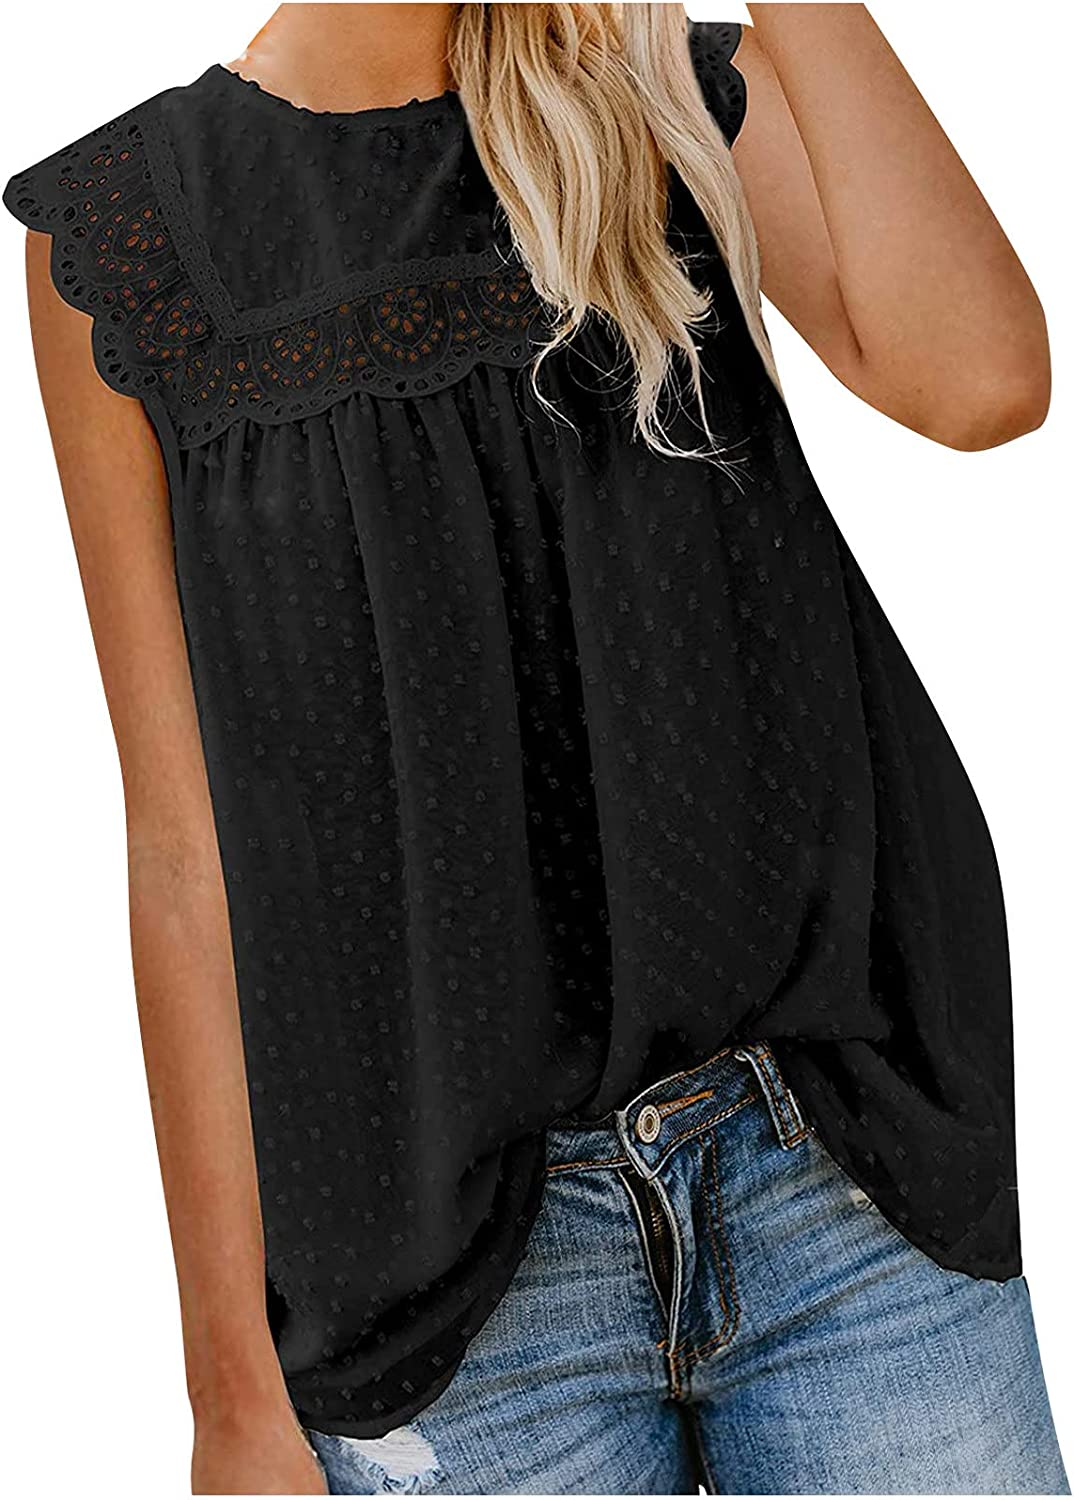 Womens Summer Tops, Fashion Women Casual Lace O-Neck Sleeveless Blouse Sloid Vests Tops